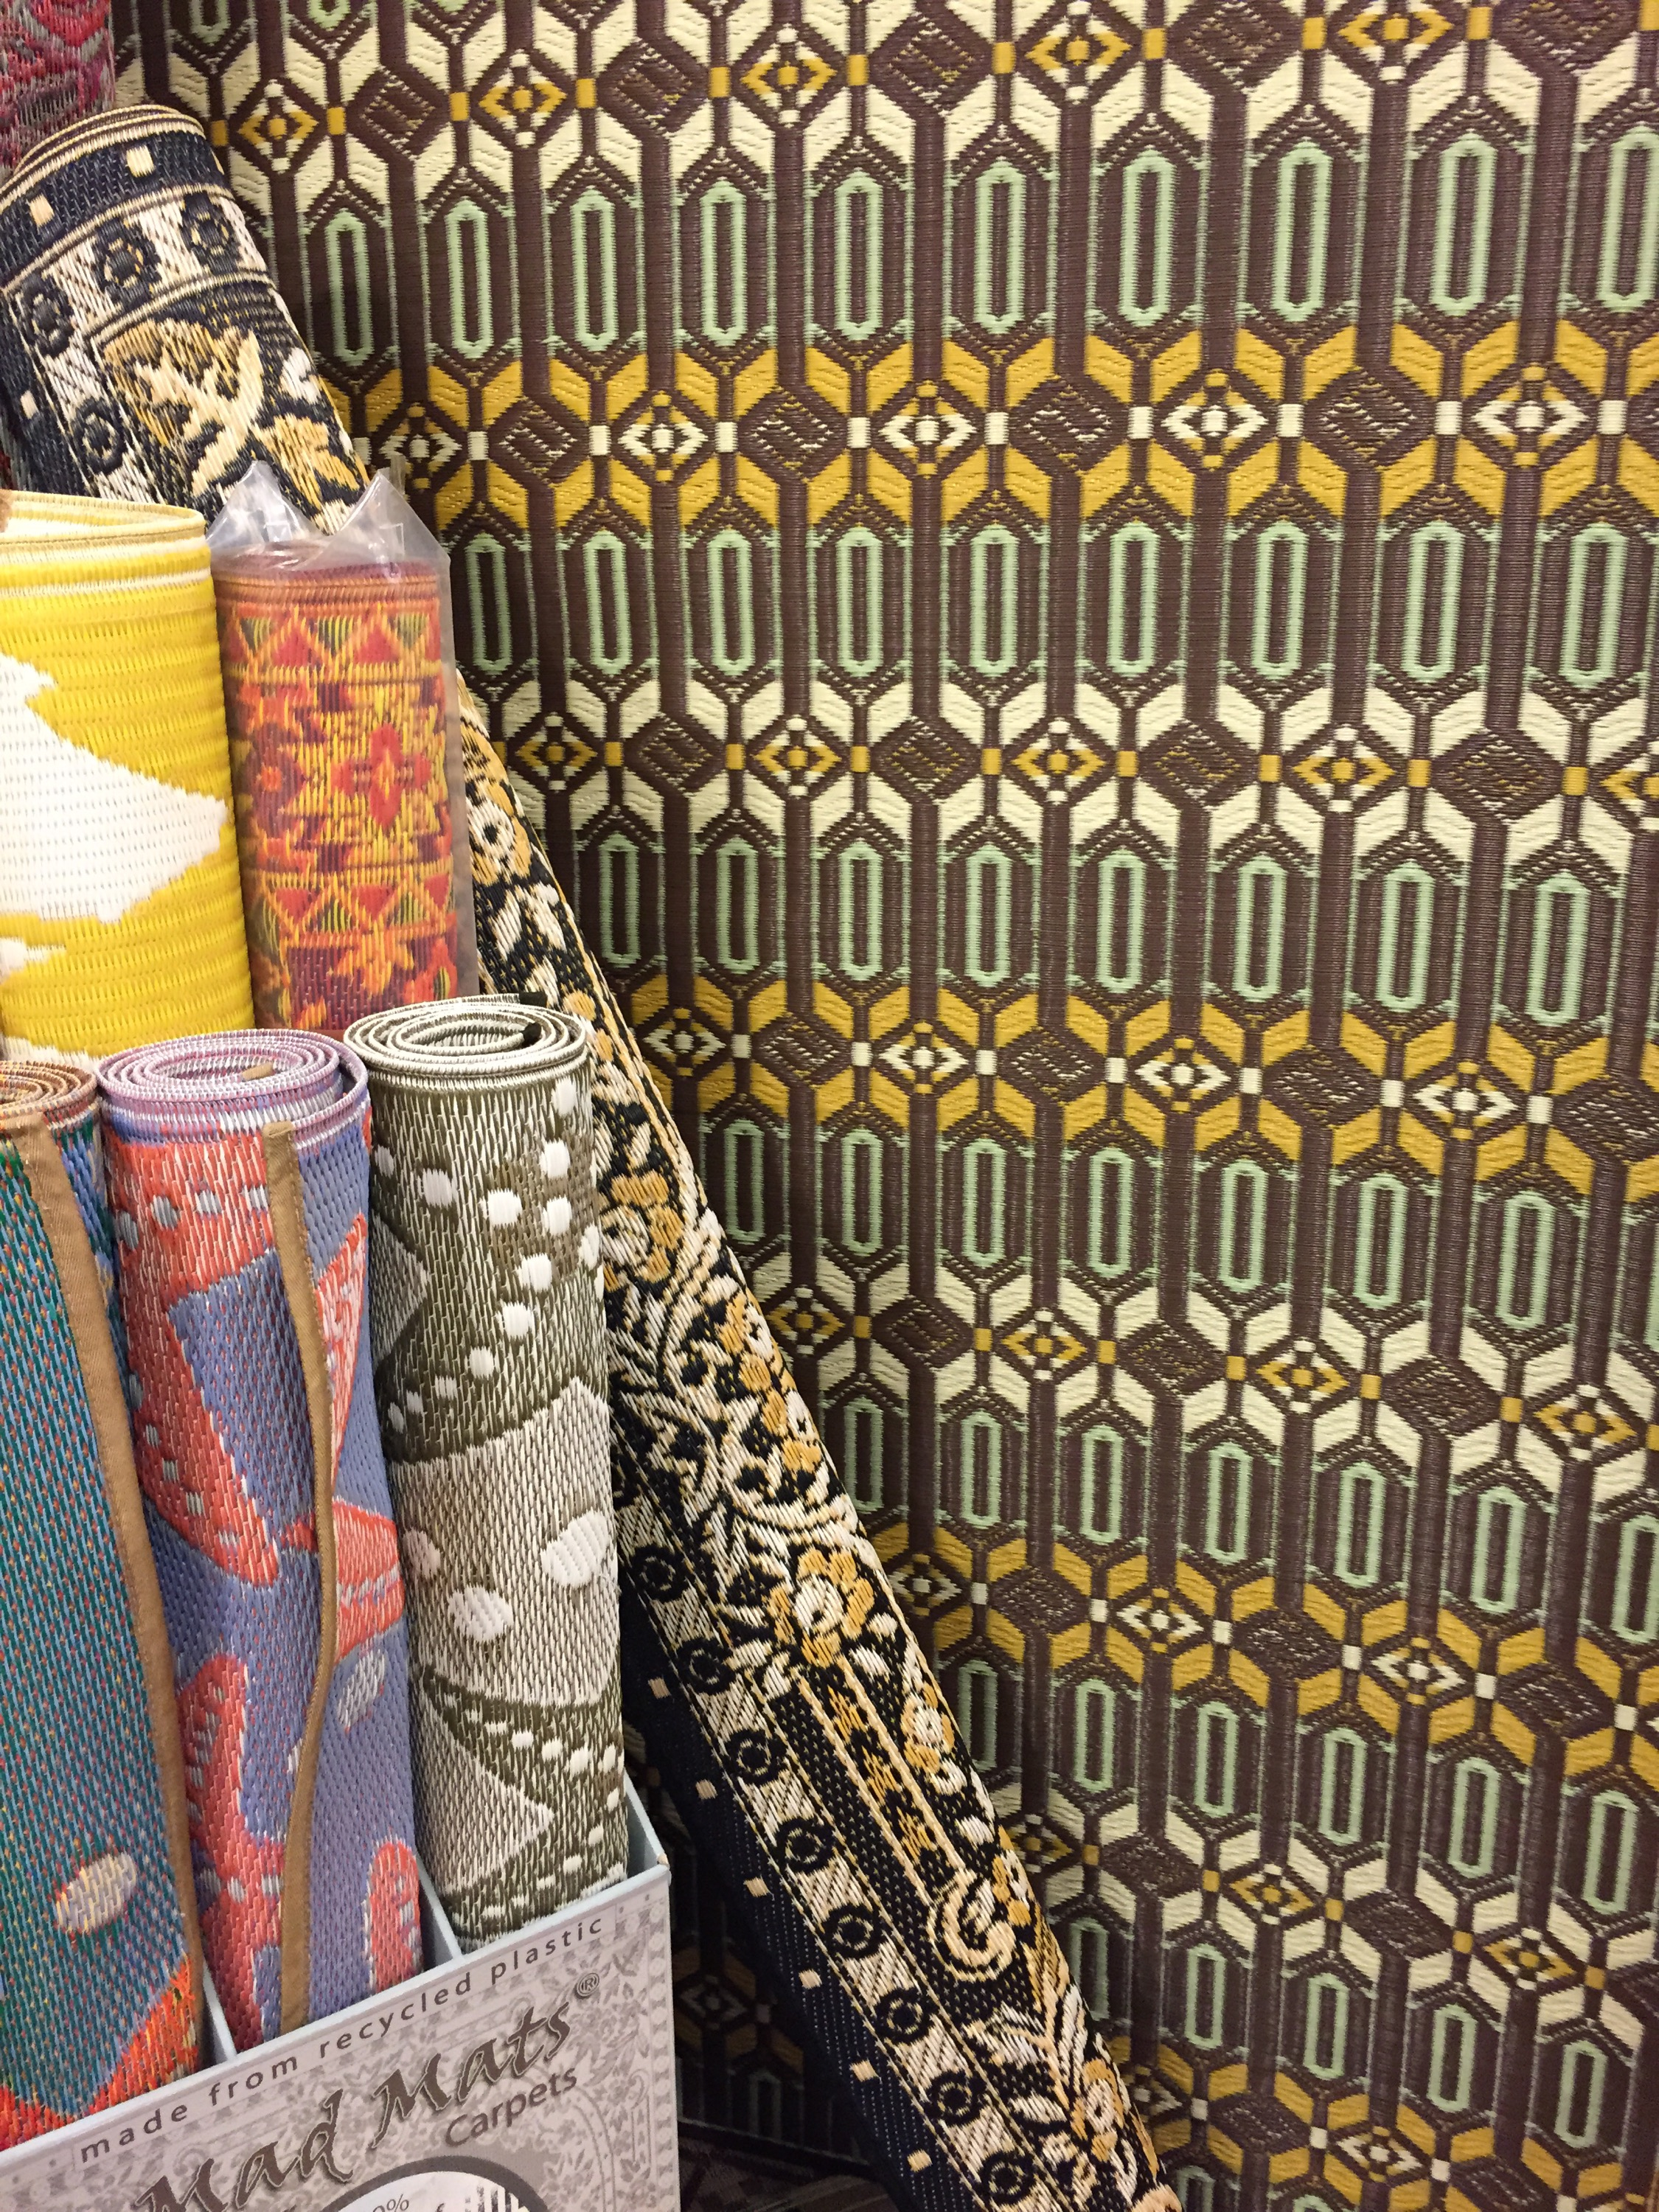 Mariachi Imports Is Now Offering The Wonderful Morrocan Rugs From Mad Mats These Great Ers Are Made Of Recycled Plastic For Indoor And Outdoor Use